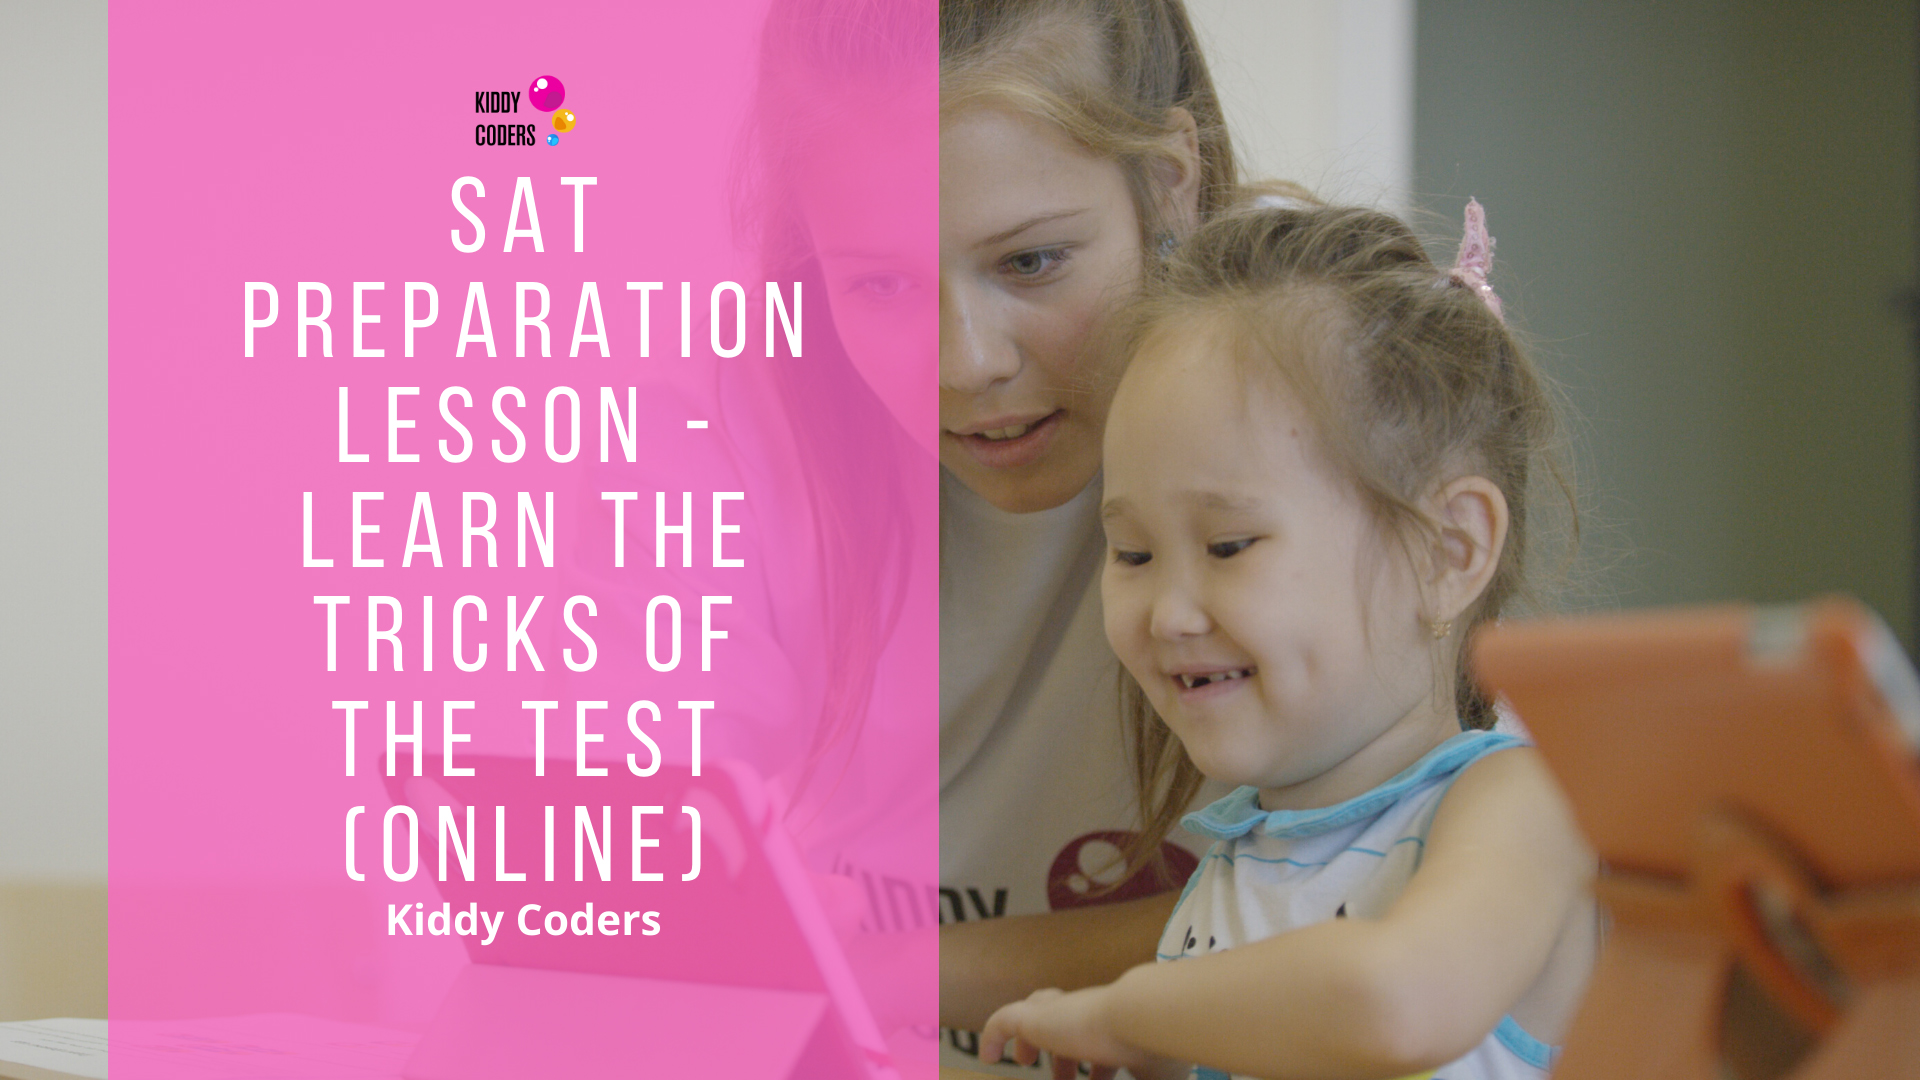 Online Class for Kids 16y.o. and up - SAT Preparation